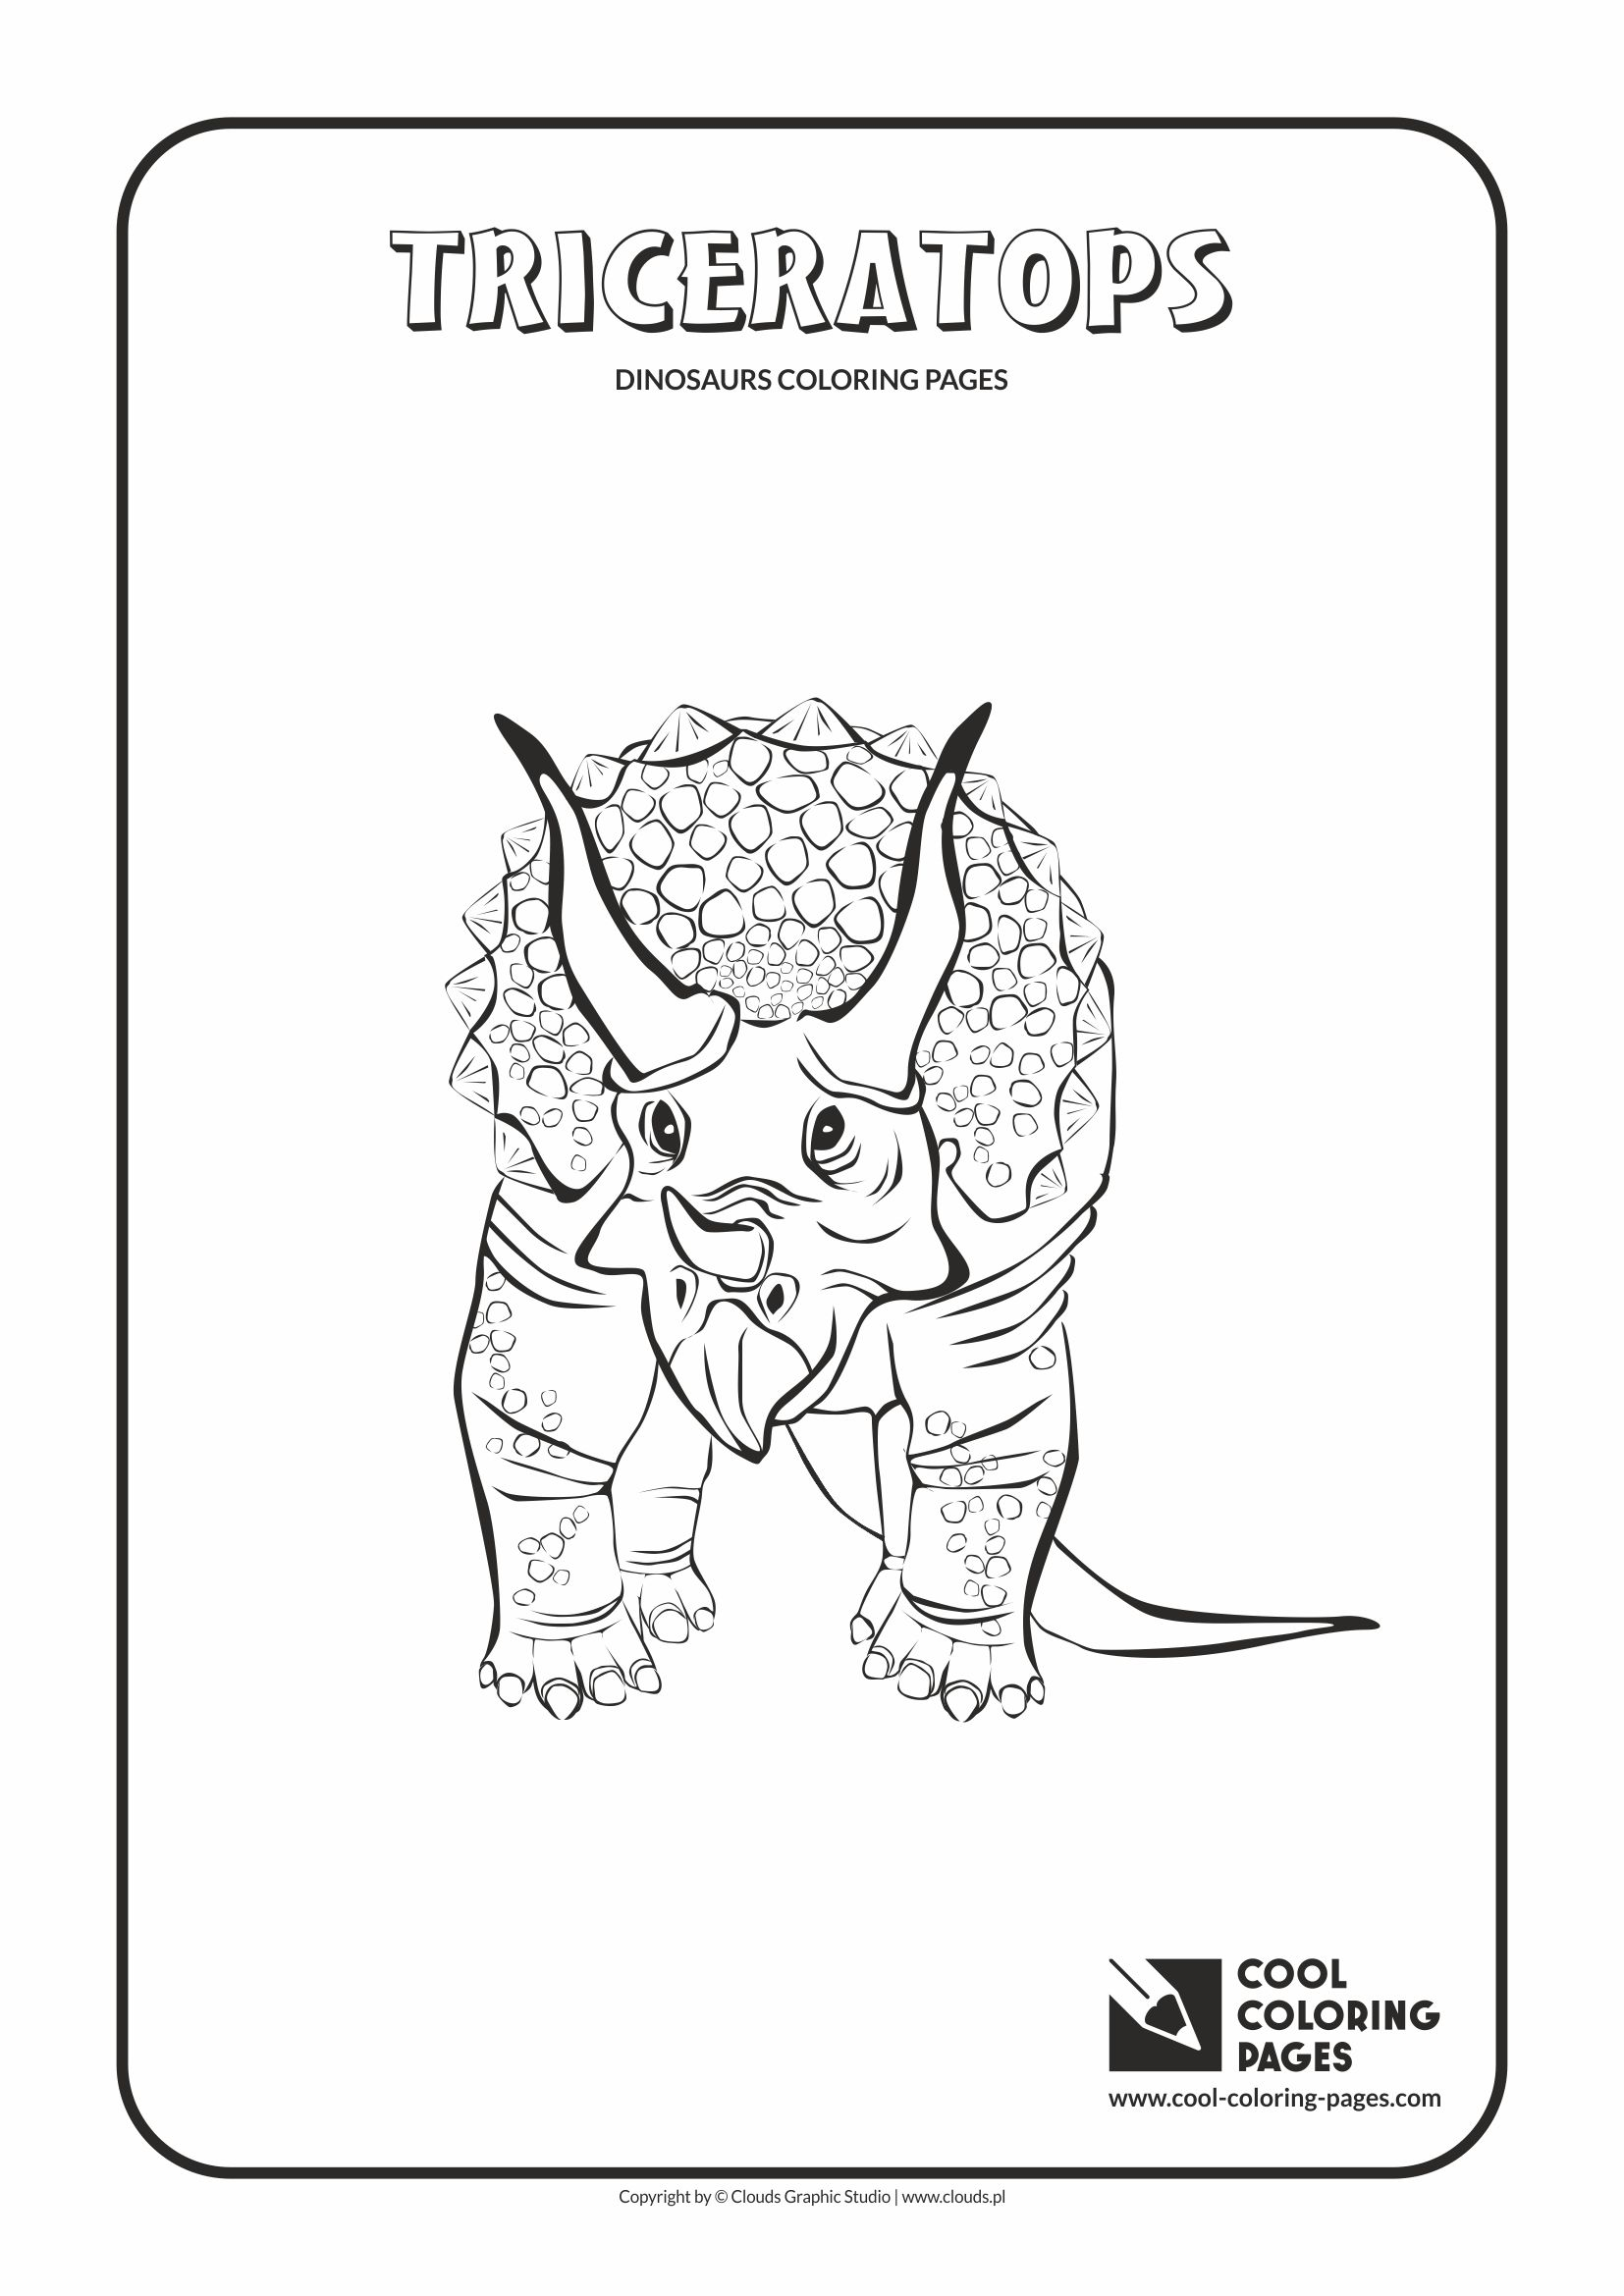 Cool Coloring Pages - Animals / Triceratops / Coloring page with triceratops